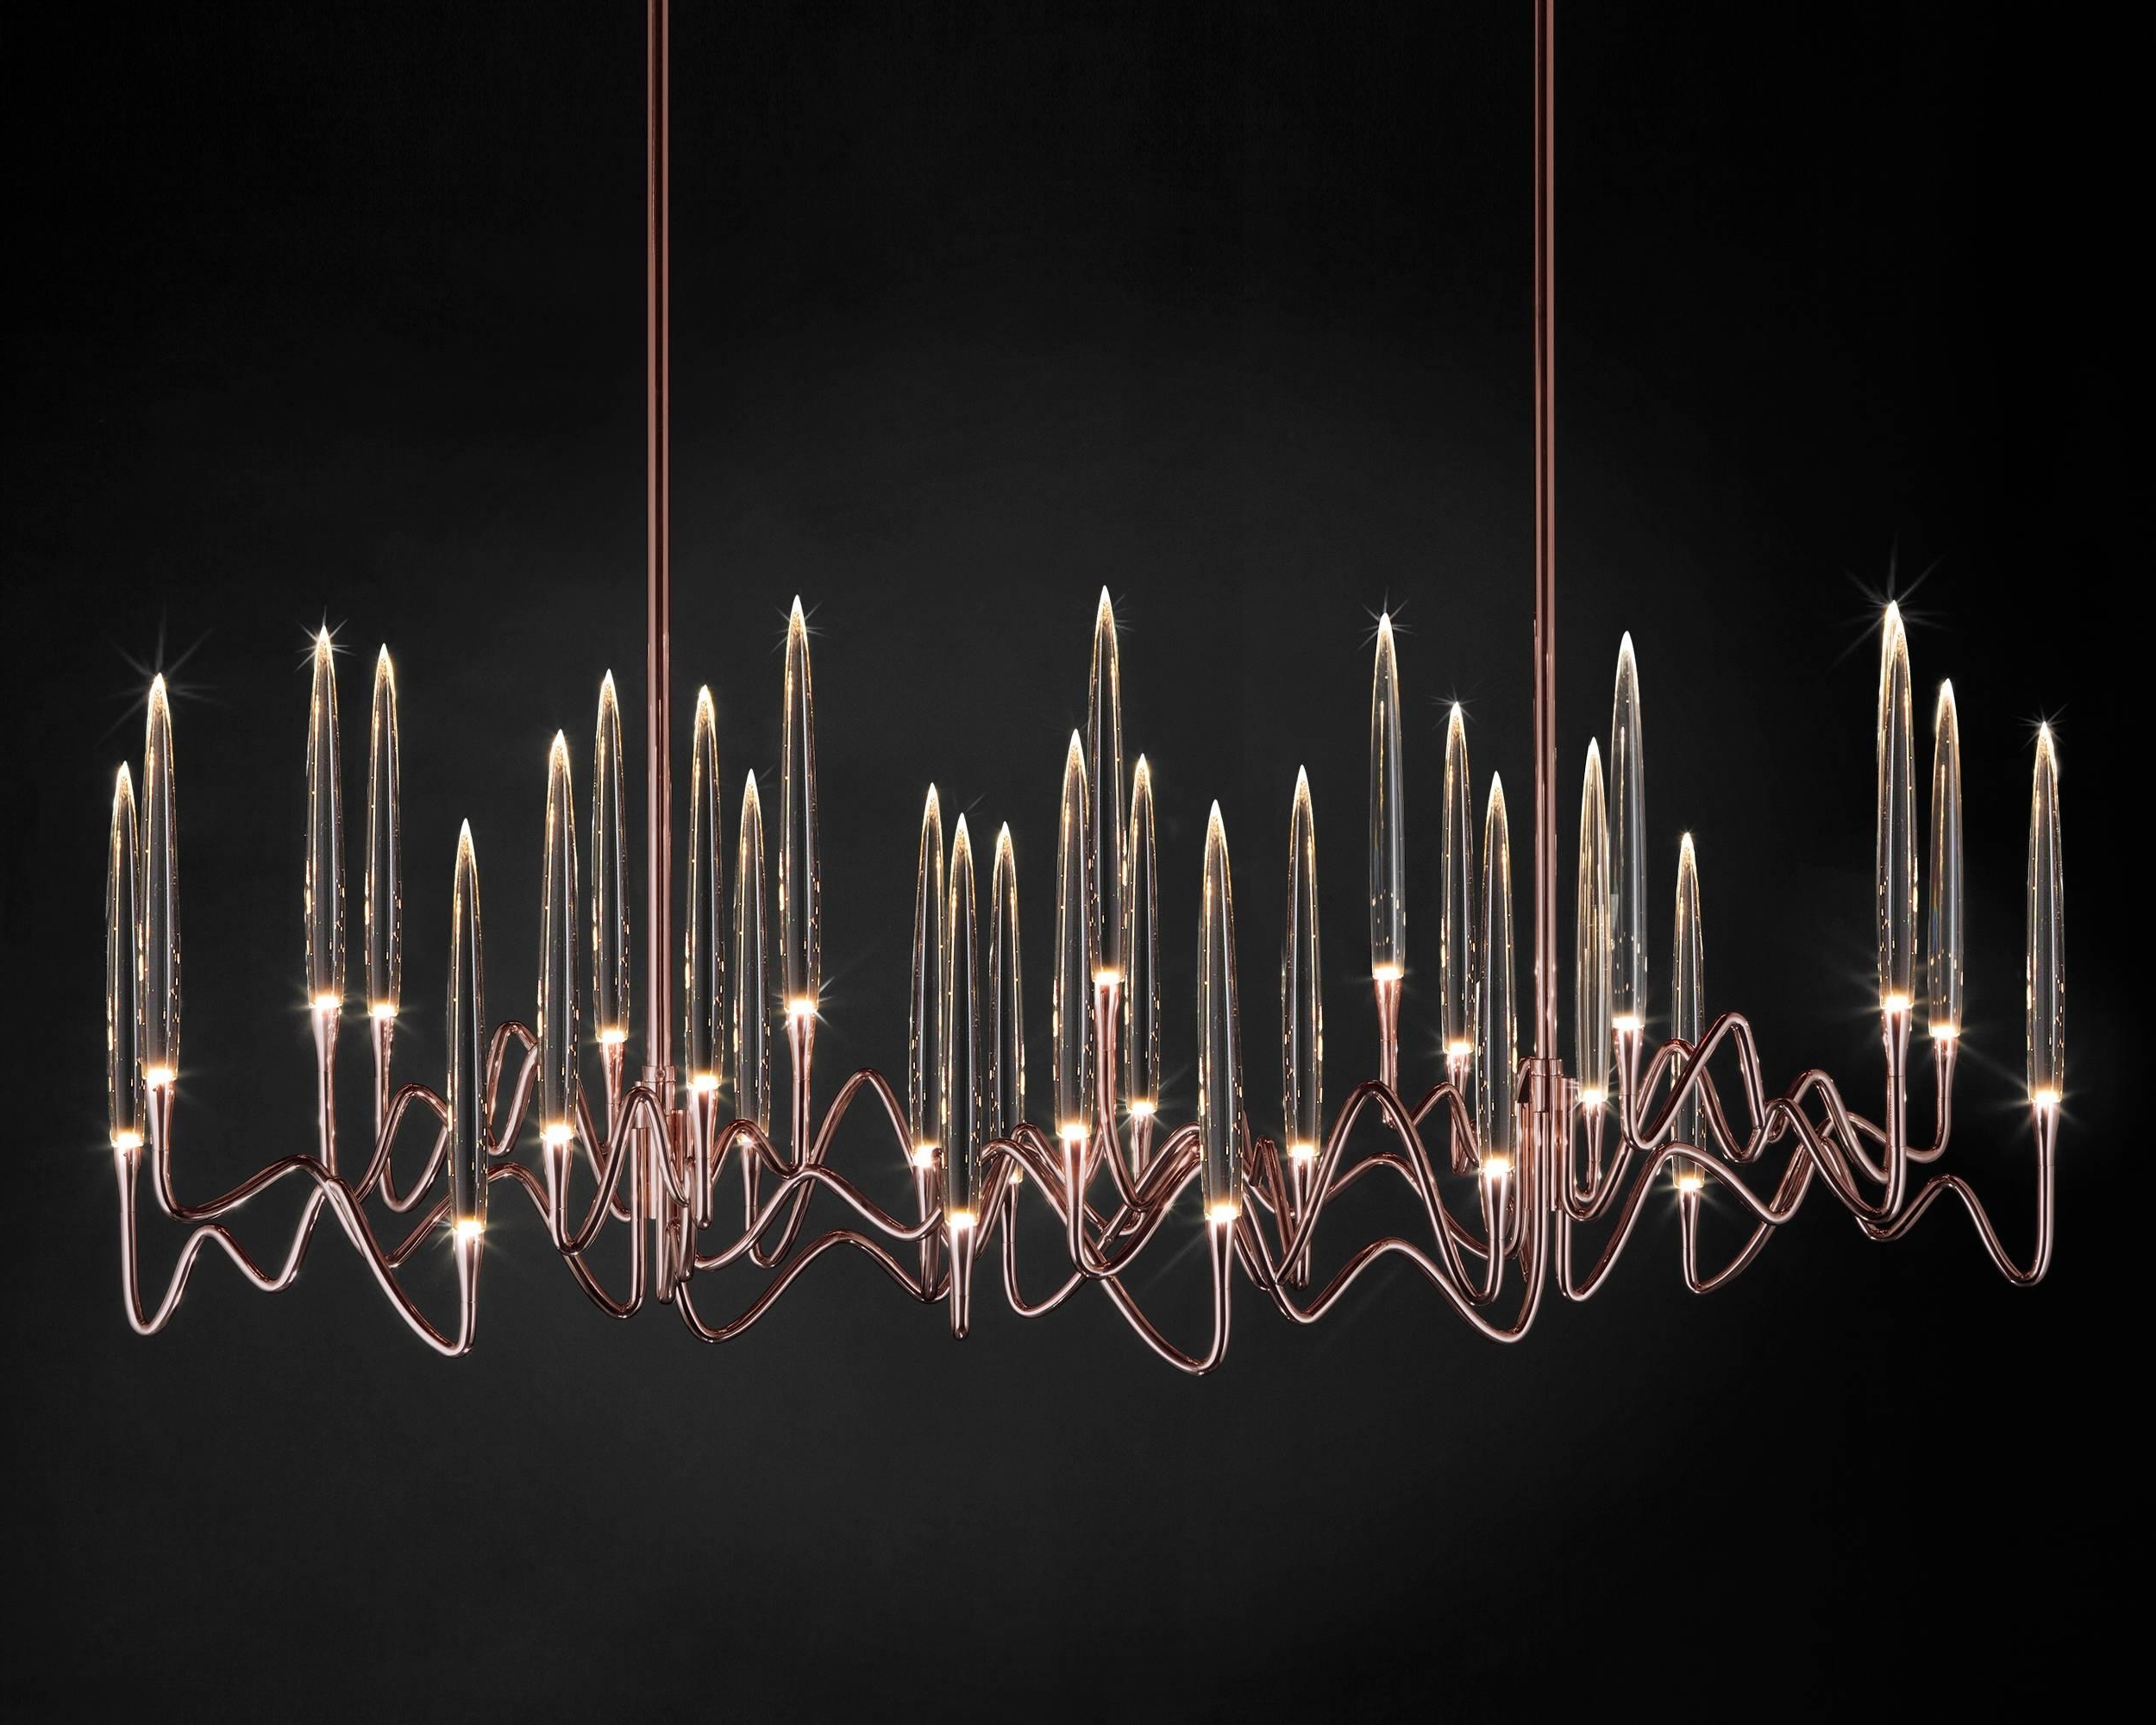 "Well Known Il Pezzo 3 Long Chandelier"" Made In Italy Led Lamp Made Of Brass And In Long Chandelier Lighting (View 20 of 20)"